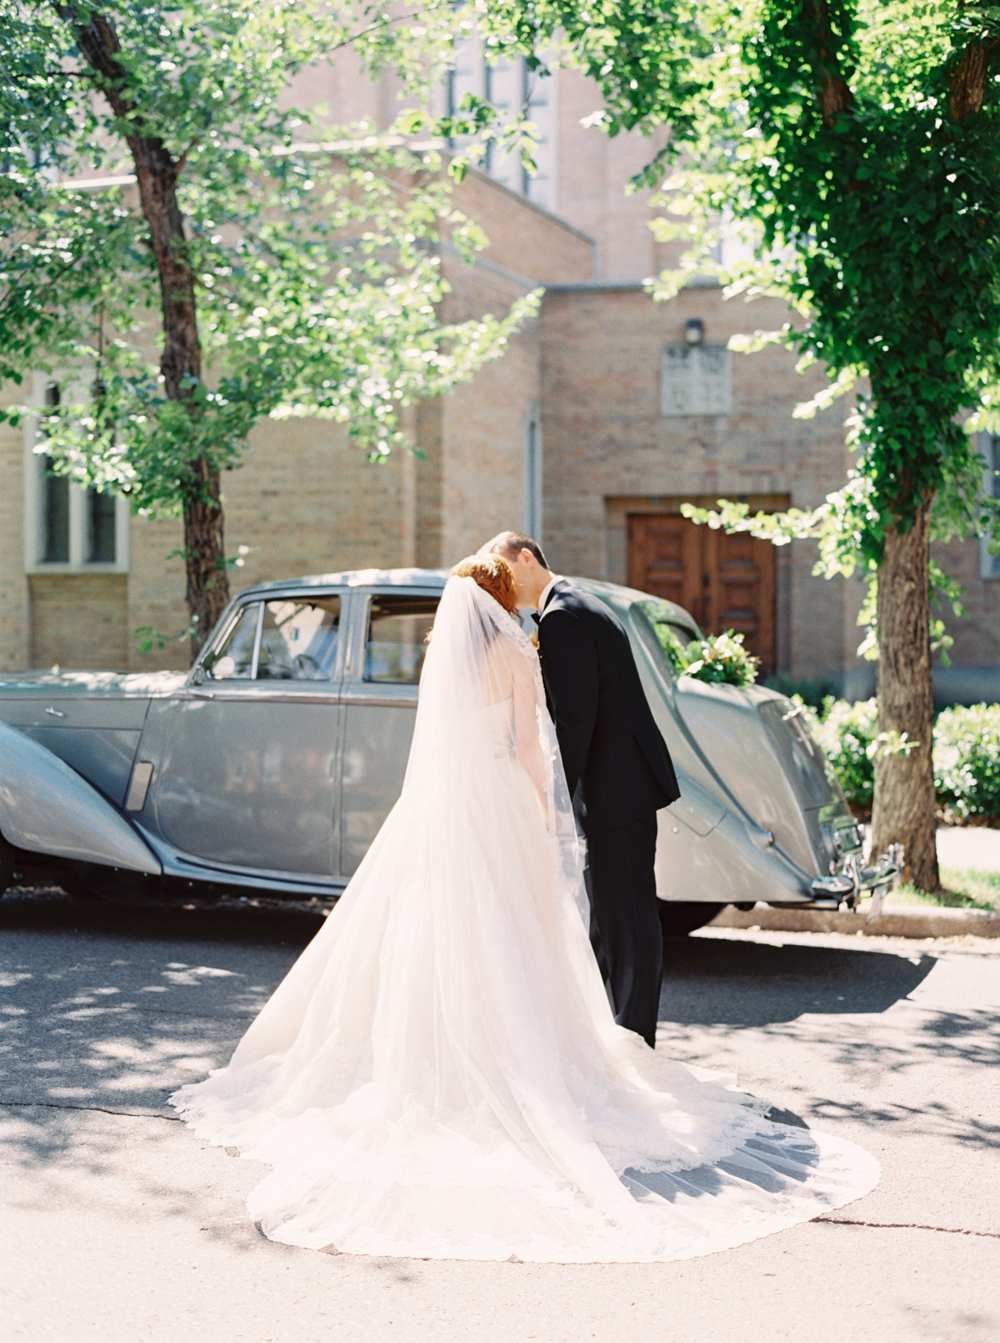 Calgary Wedding Photographer | Canmore Wedding Photographers | Banff Wedding Photography | Fairmont Palliser | Calgary Church | Blue bridesmaids | Vintage Car